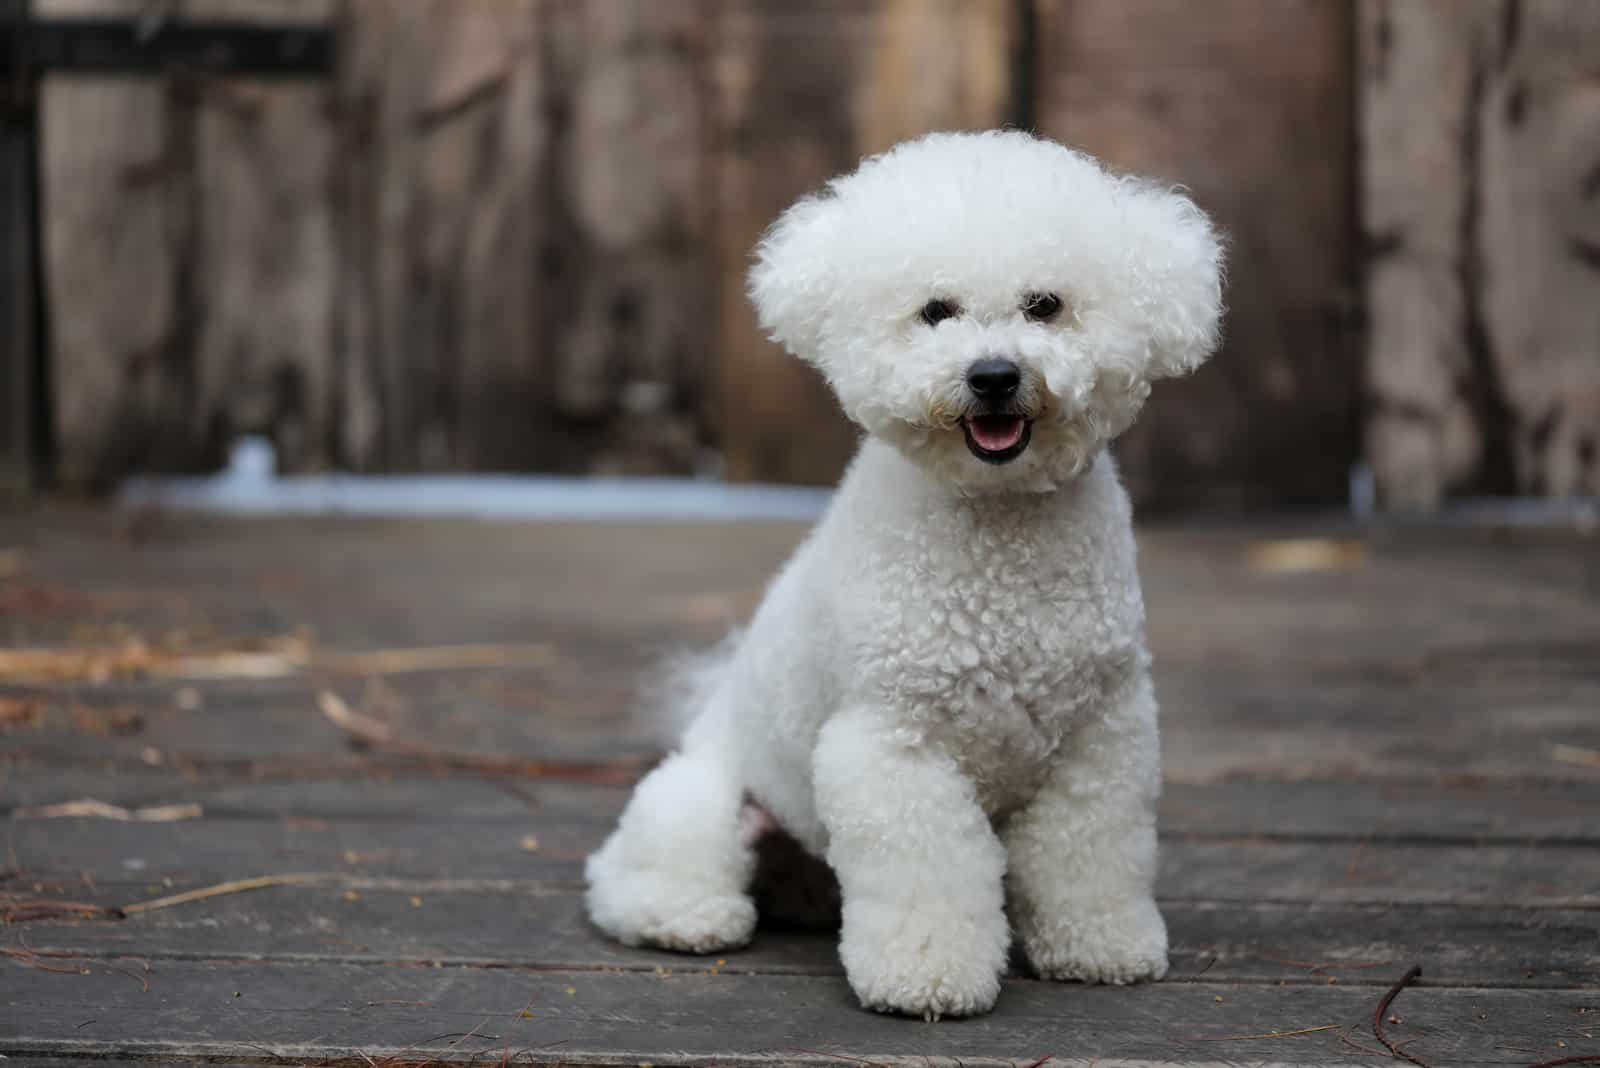 Bichon Frise dog with a white fluffy coat